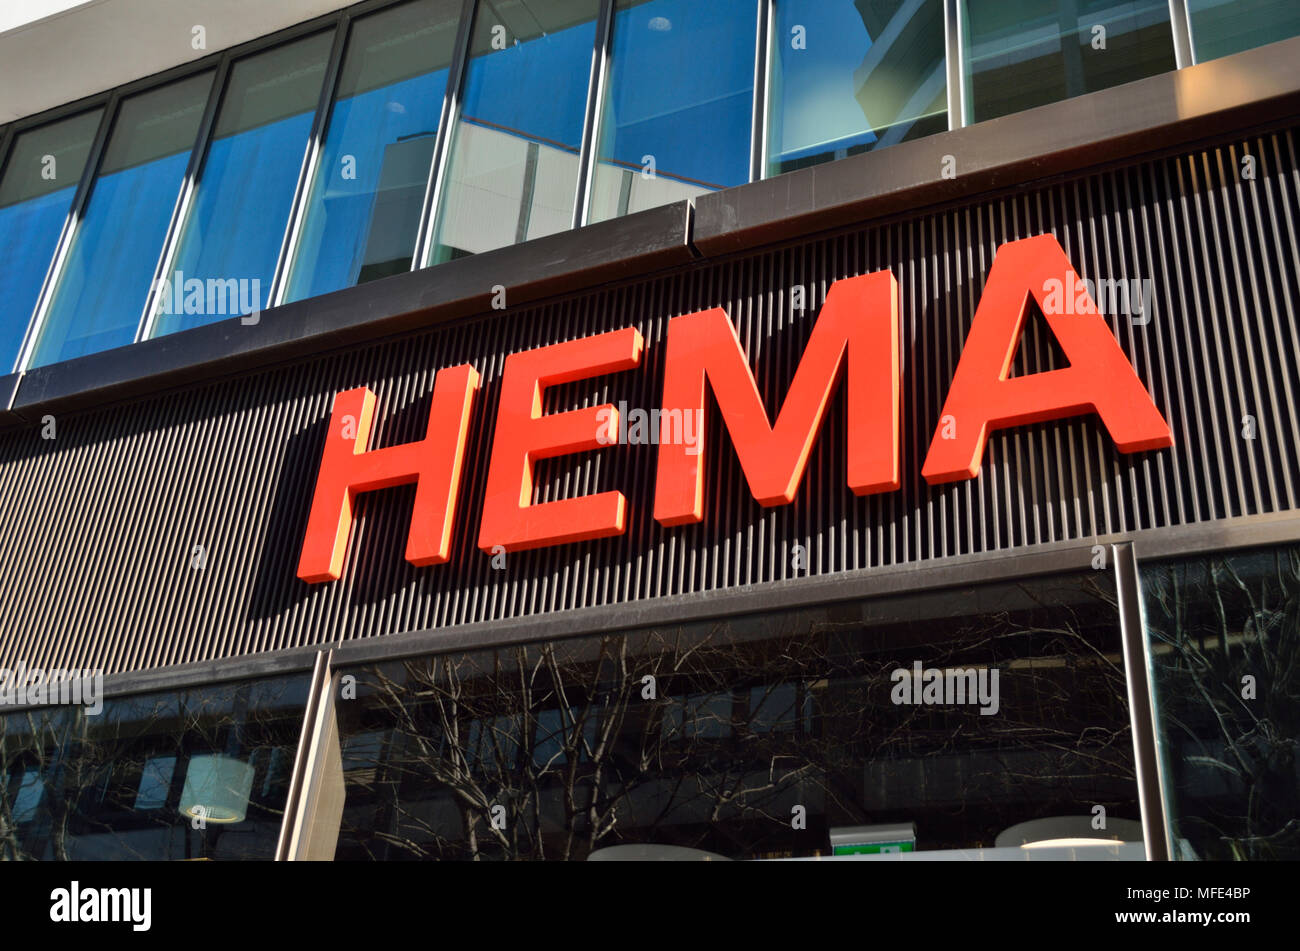 Hema Stock Photos & Hema Stock Images - Alamy